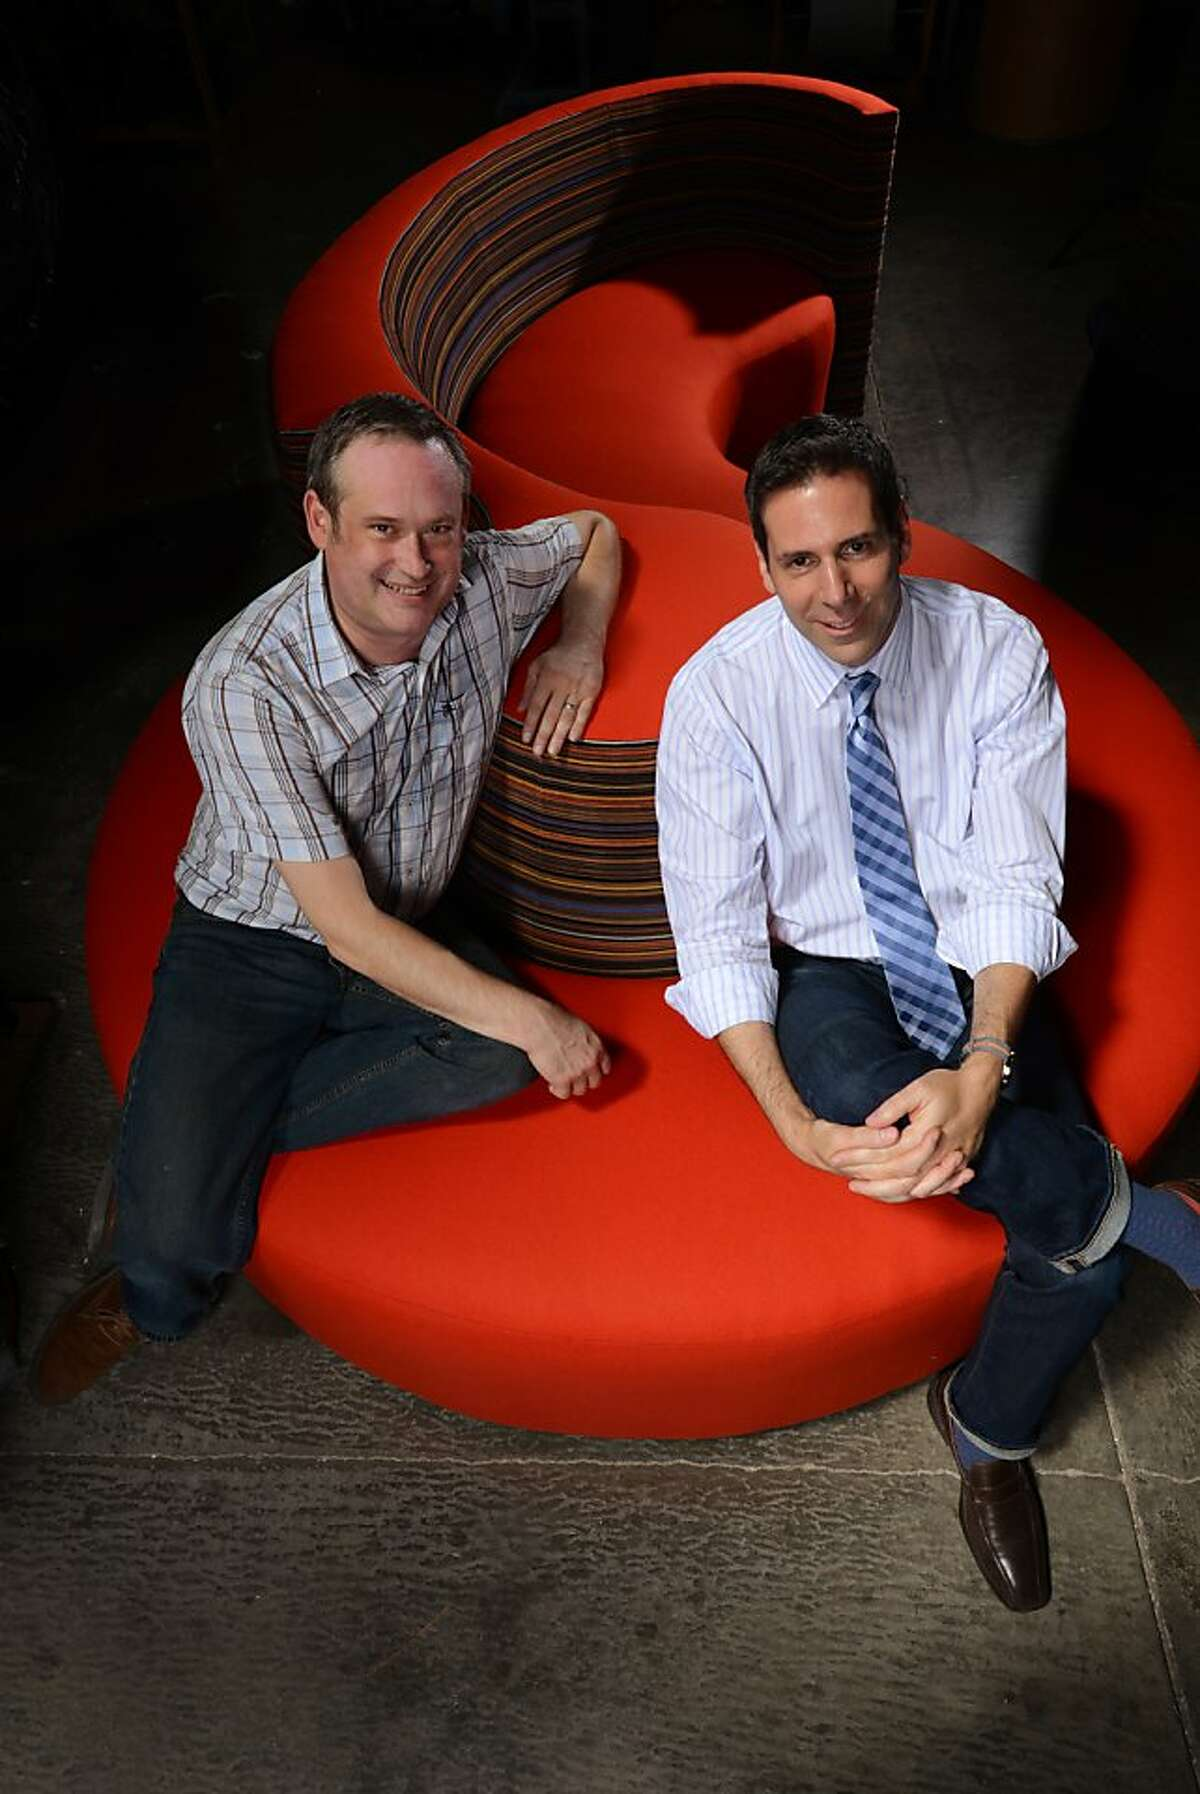 Jim Berrens, left, of Cypress Furniture with designer Michael Friedes on a custom made Serpentine Lounge chair produced by Berrens at Cypress Furniture in Hayward, California. July 26, 2013.